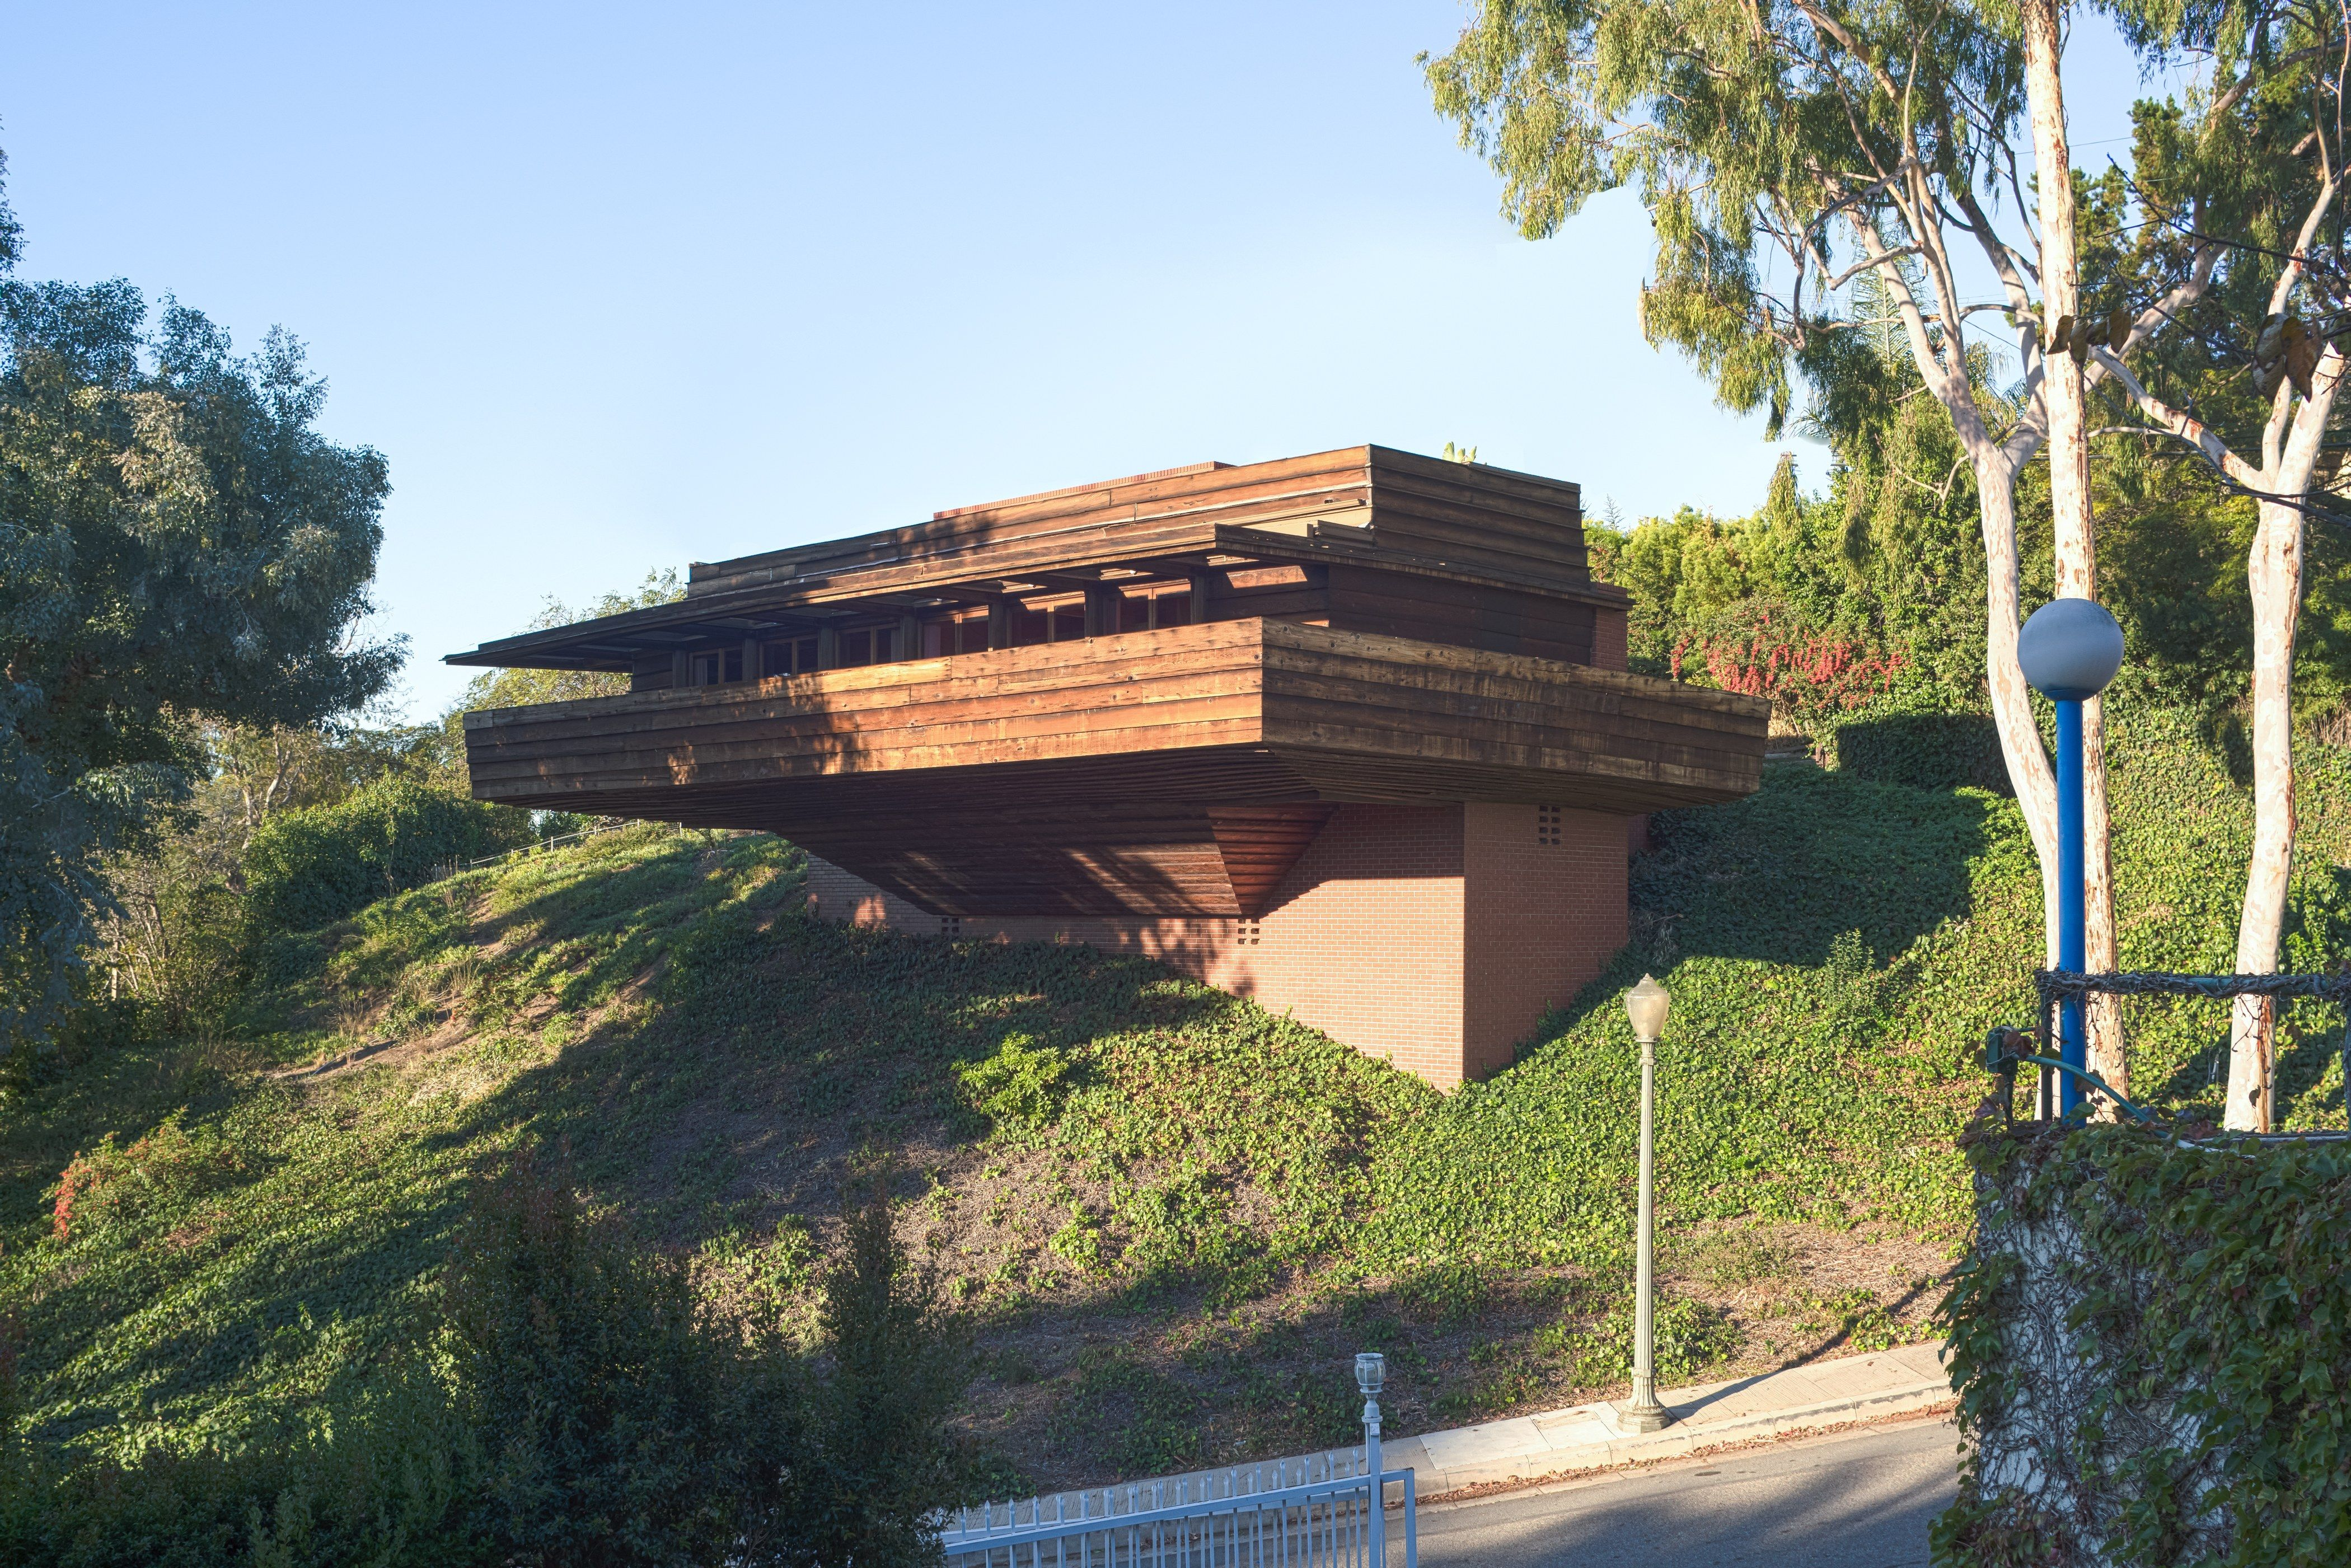 Frank Lloyd Wright Floating Sturges Home In Los Angeles